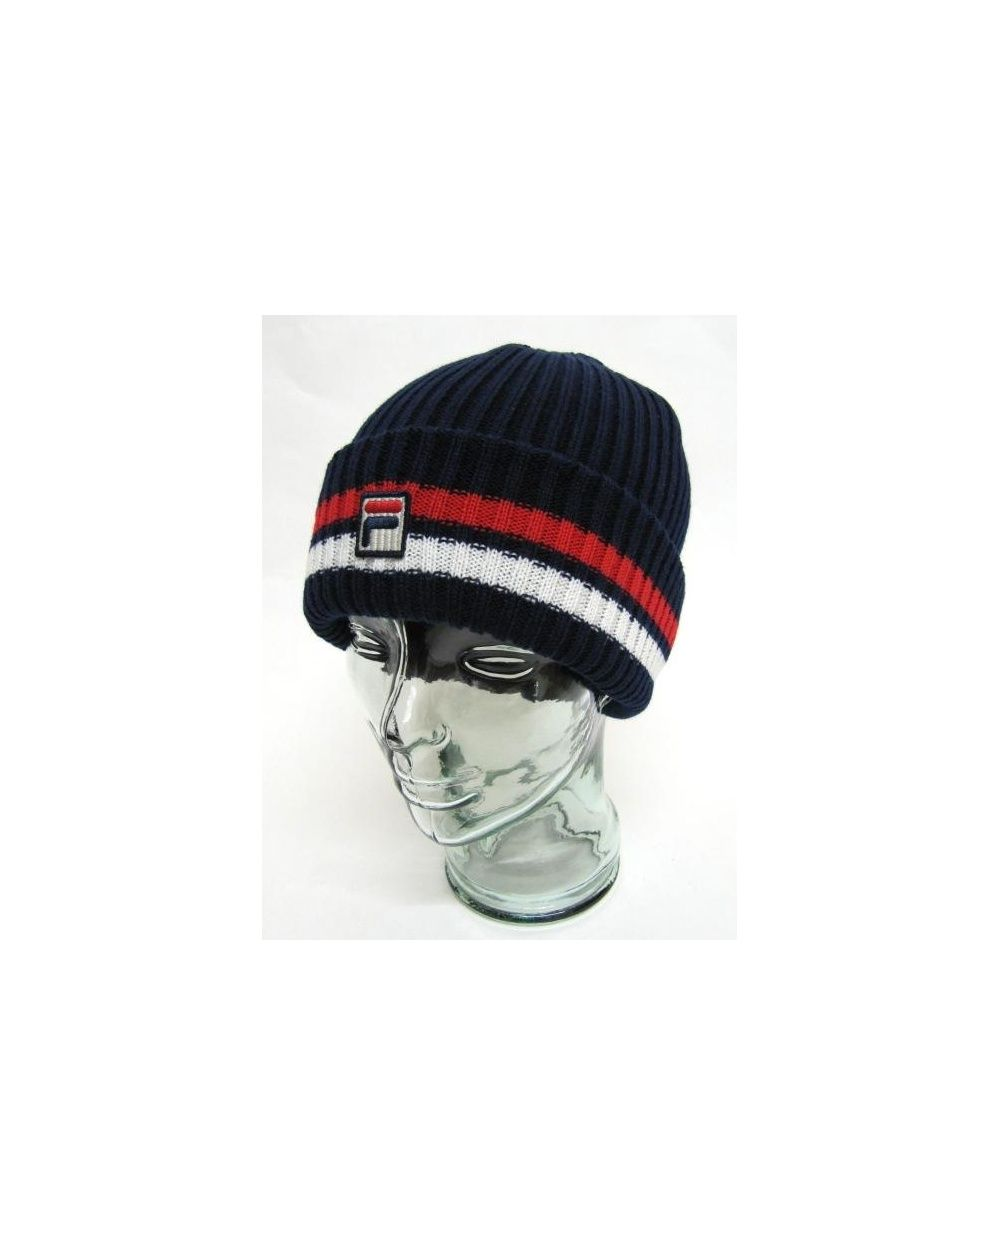 fila bobble hat Sale 54f370c1715